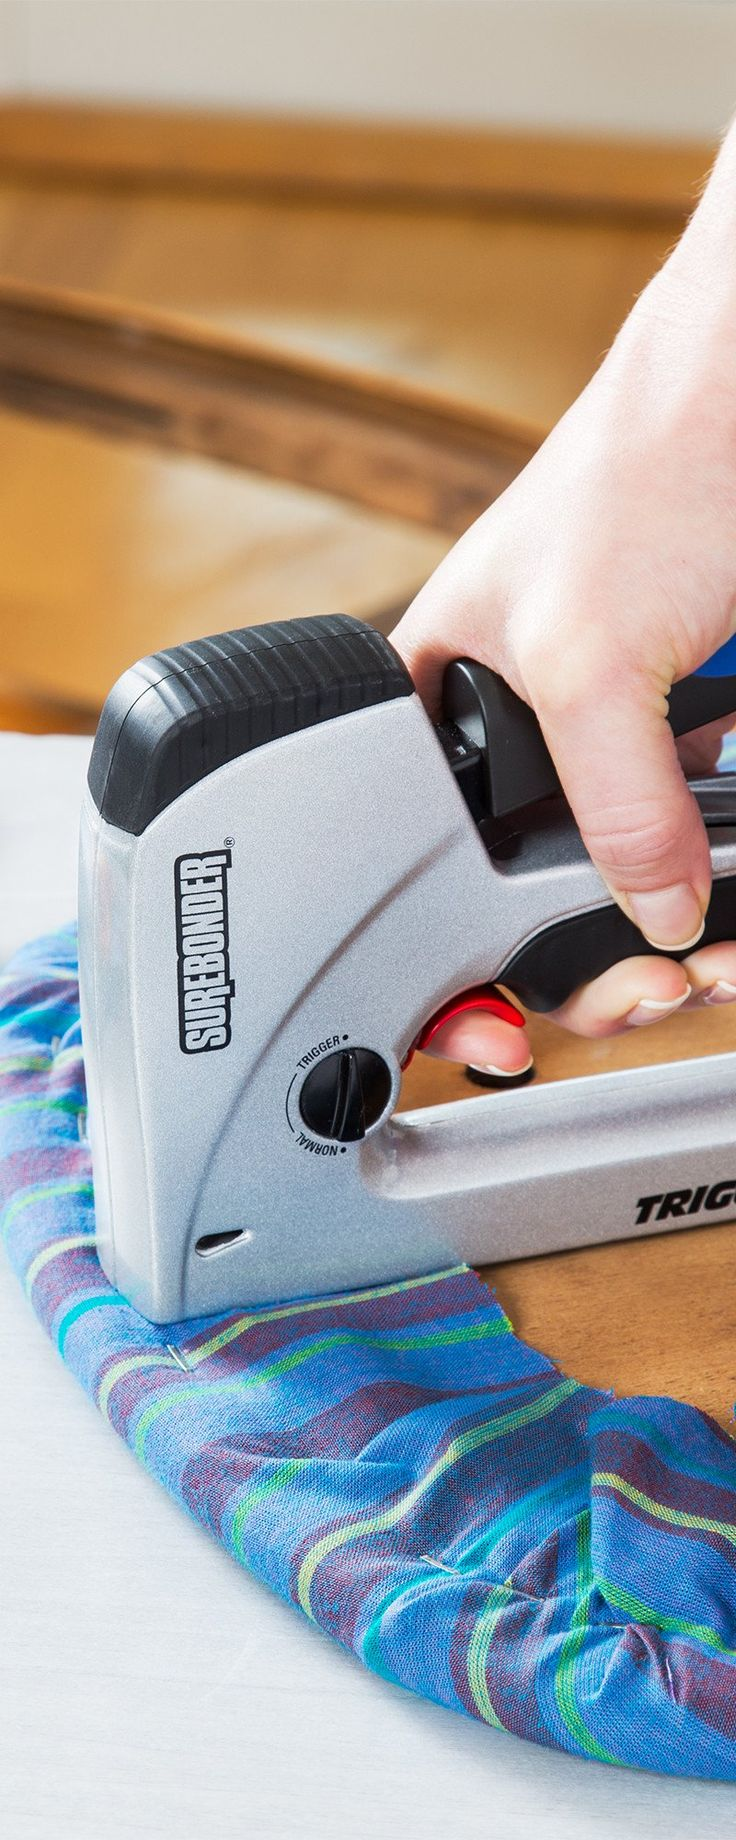 TriggerFire: Kickback-Free Staple Gun - It only takes one hand to operate the TriggerFire staple gun. Access hard-to-reach areas with minimal effort and no kickback.